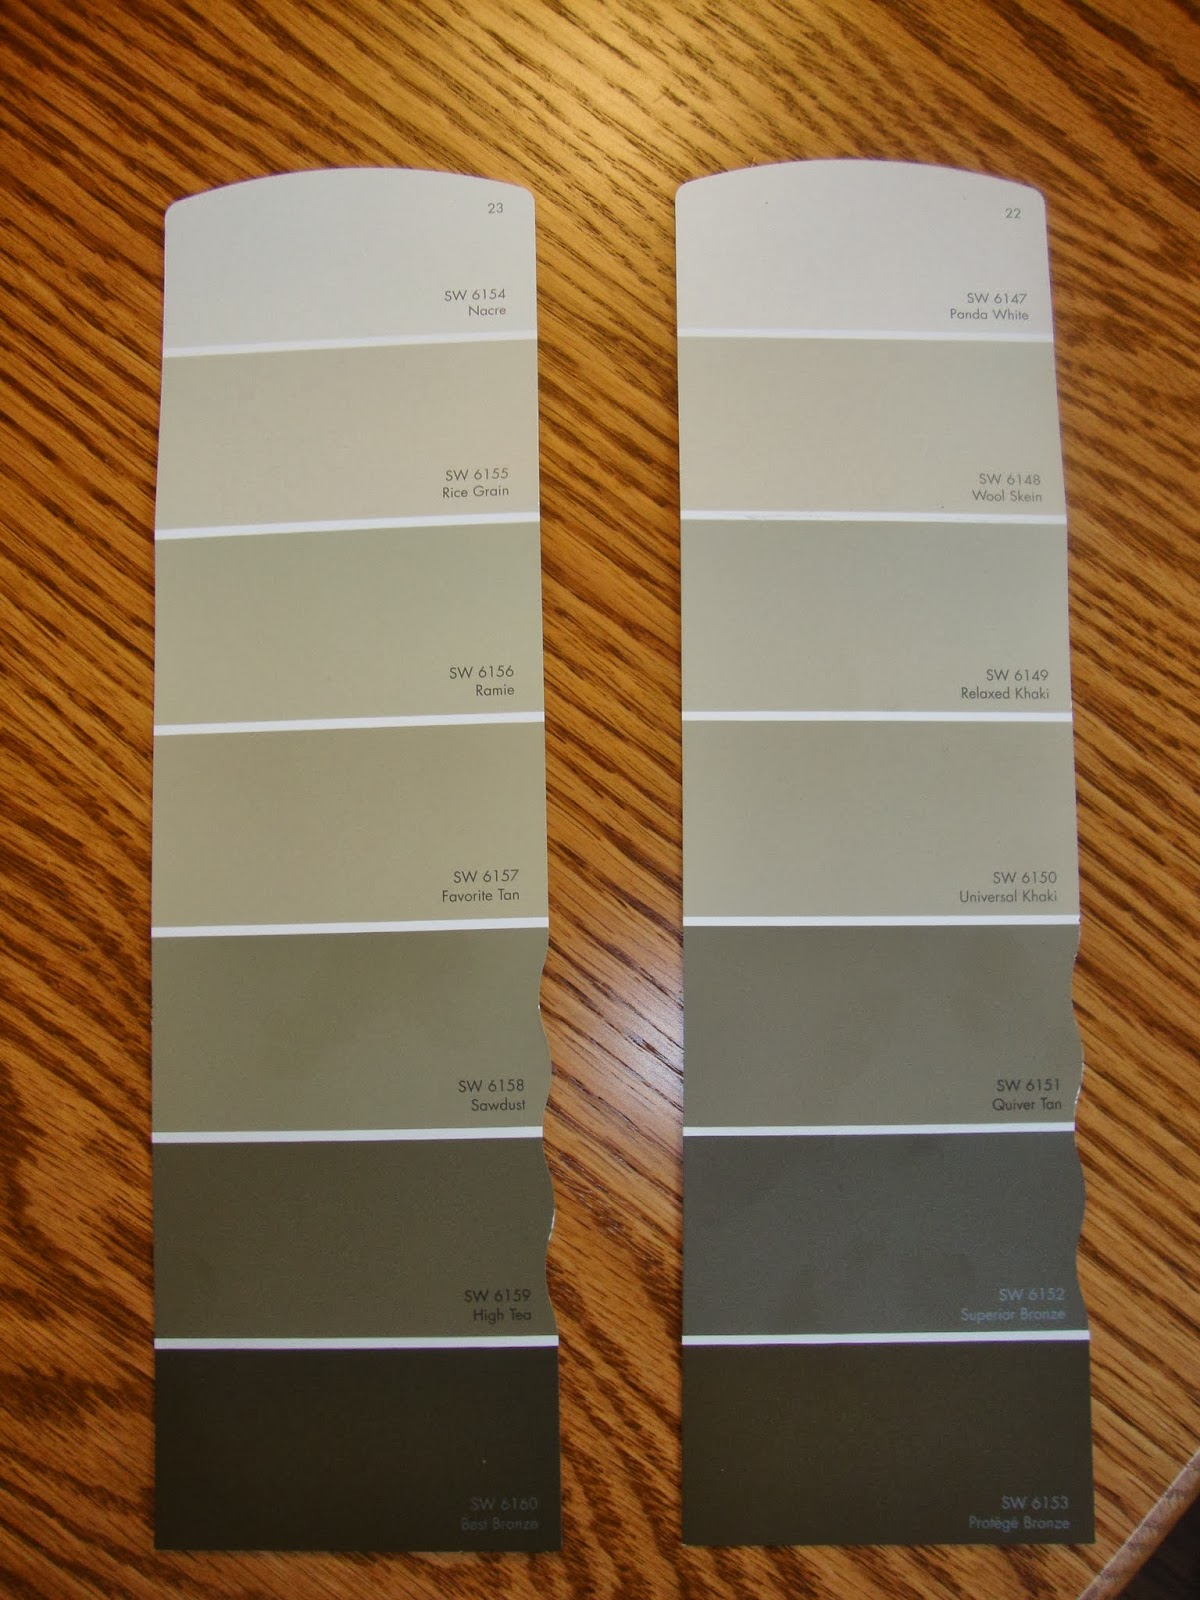 Honey And I Went Your Bought Some Sample Cans Of Colors That Spoke To Us From These Two Strips Here Are The